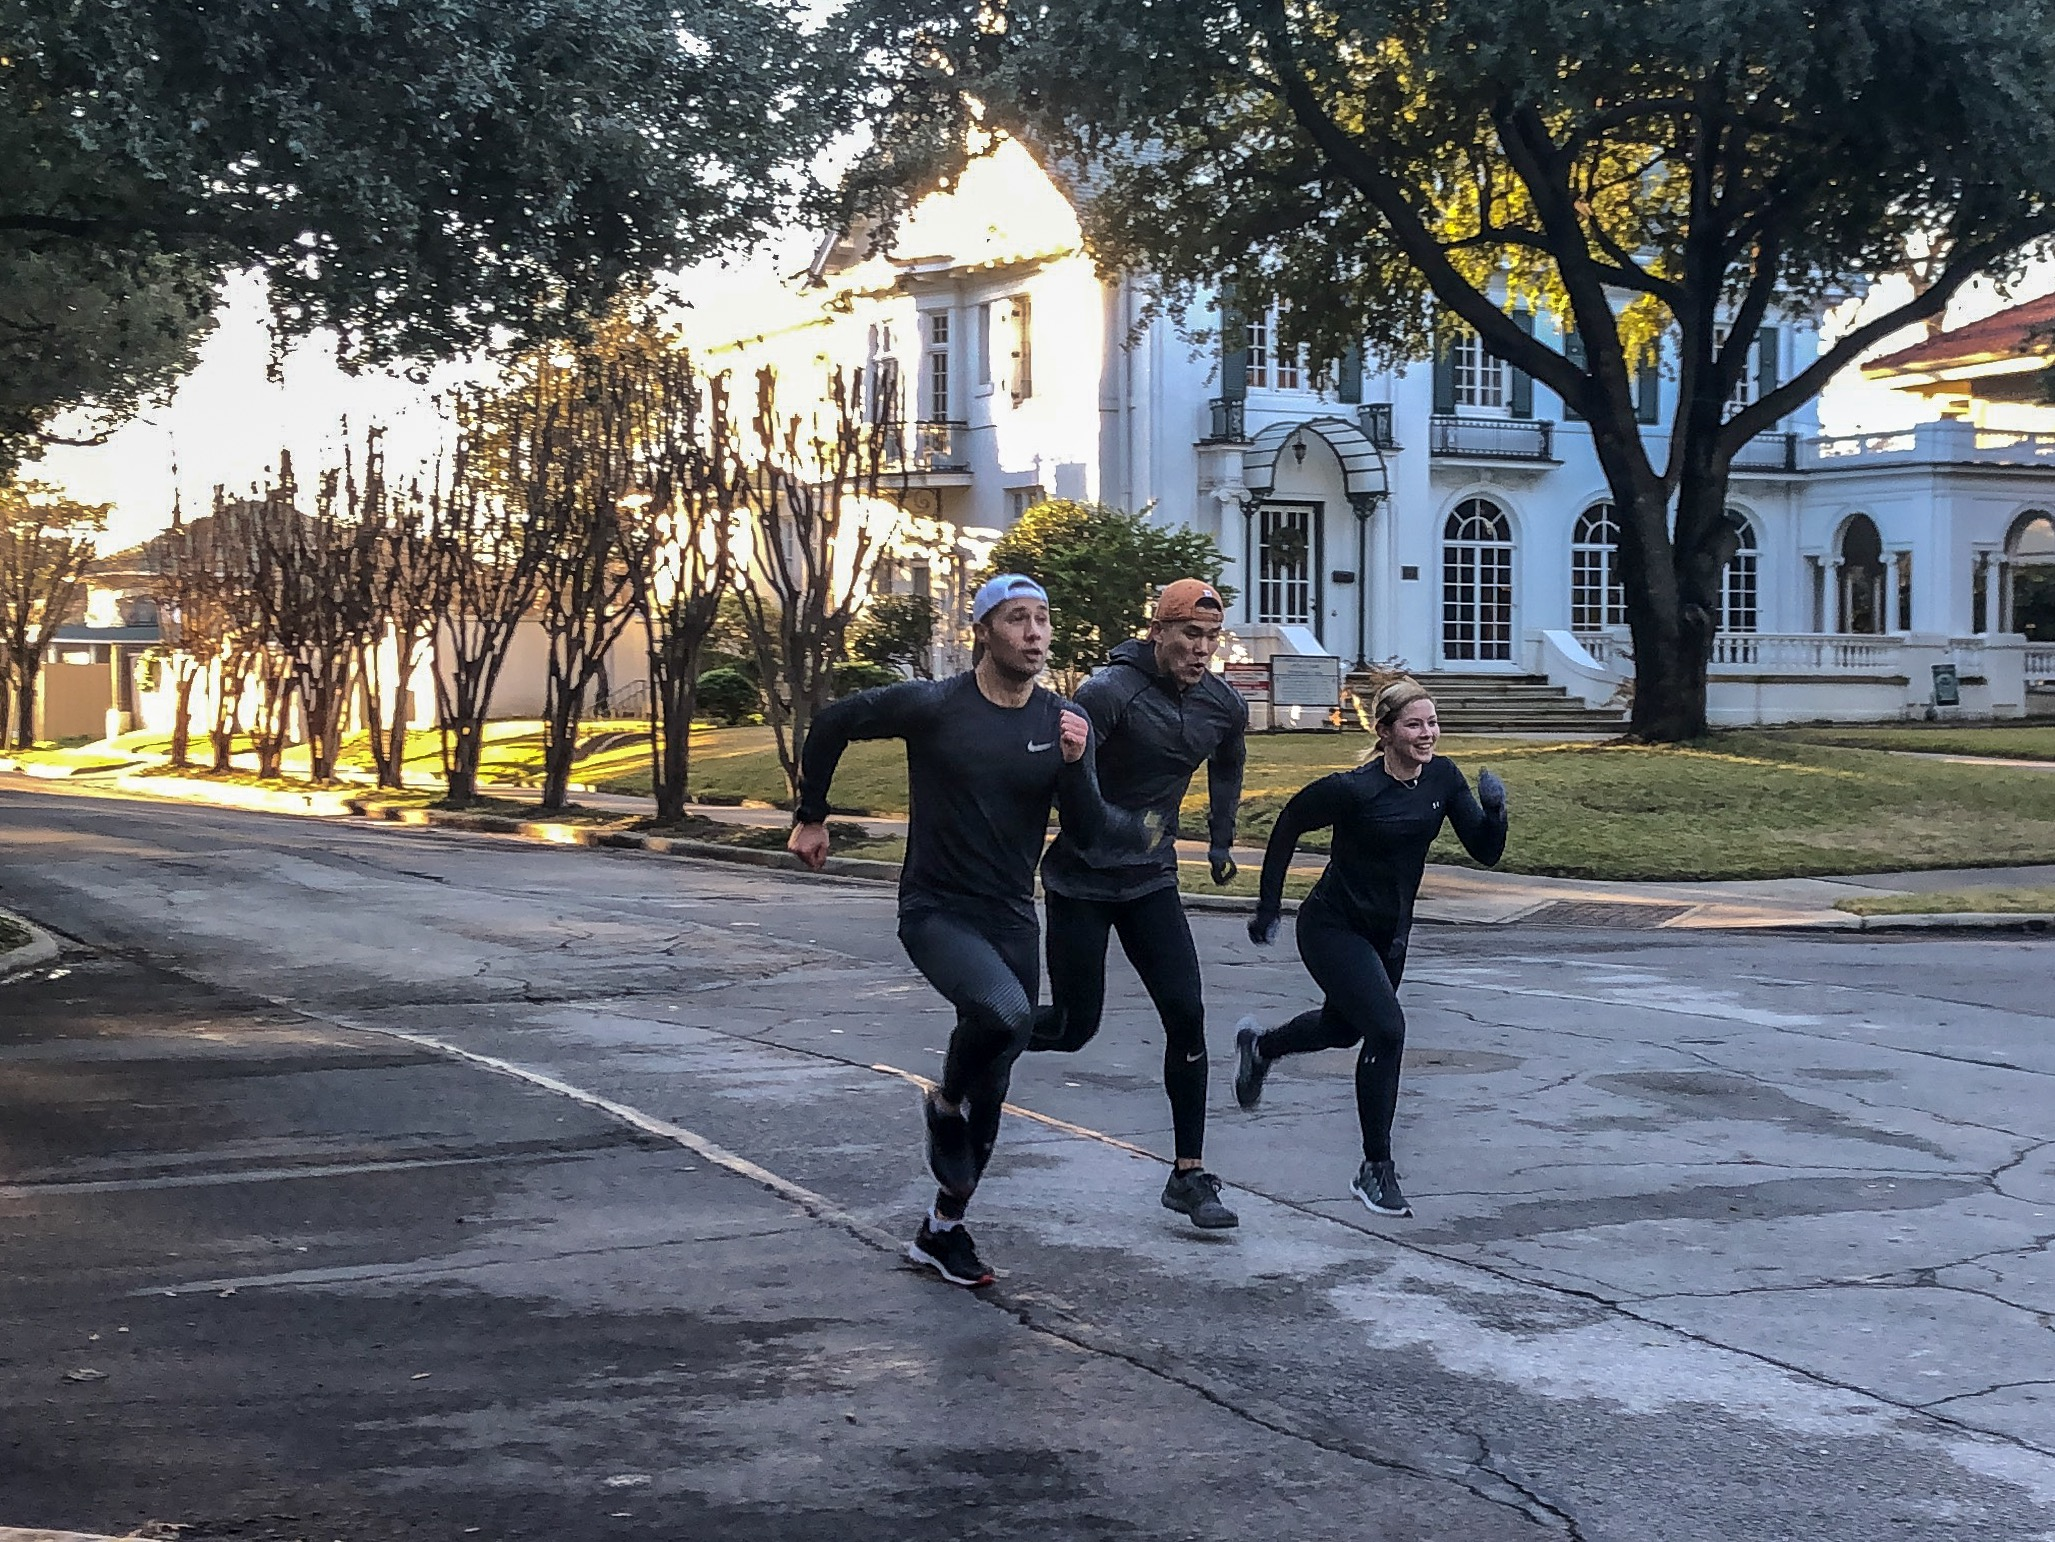 Ultramarathon Training and running is easier with friends!